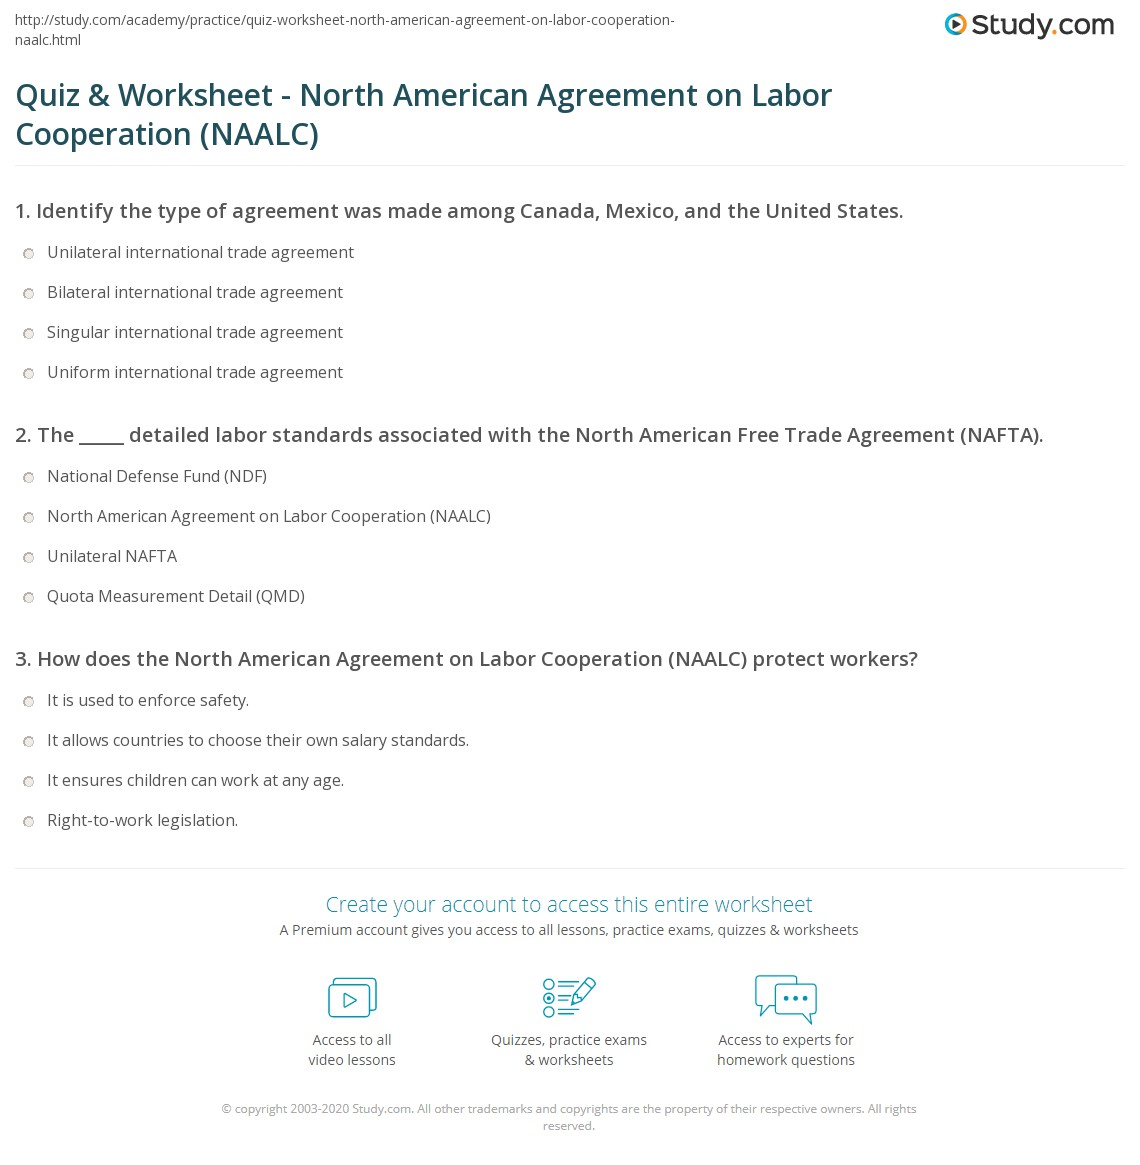 Quiz Worksheet North American Agreement On Labor Cooperation